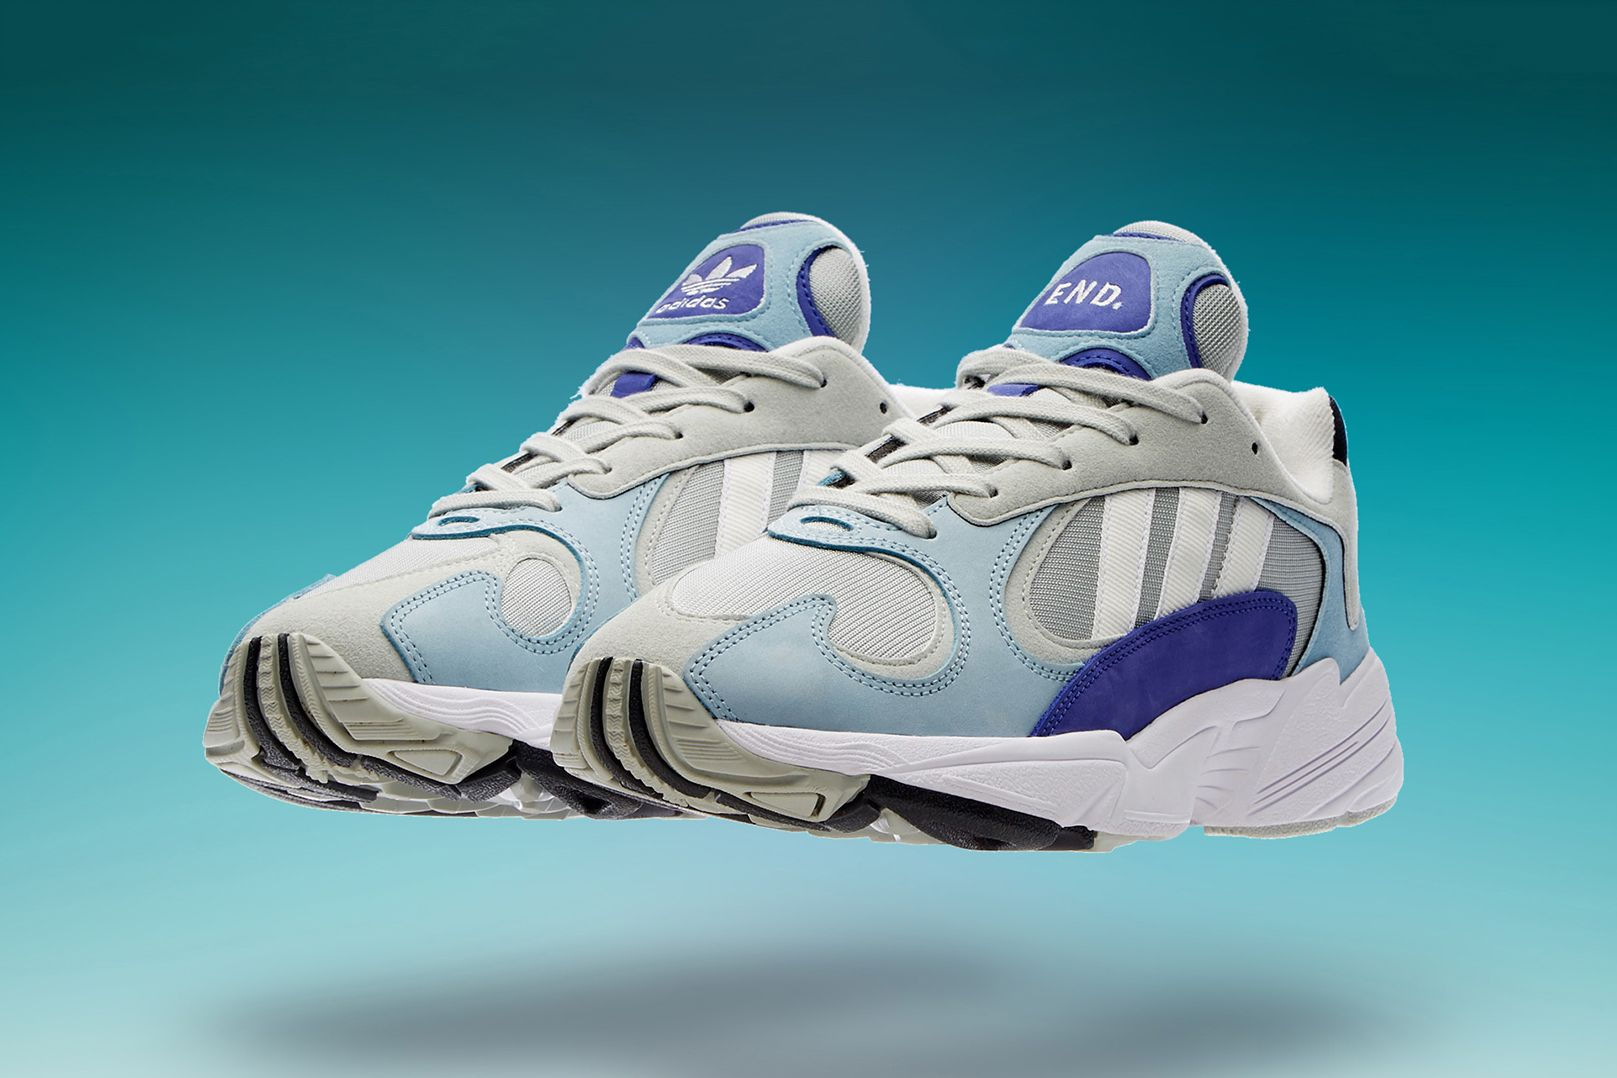 Clothing adidas Yung-1 Atmosphere Release Info Grey Blue Purple Chunky  Runner 1990s Falcon Dorf Sneaker Trainer Shoe Details Cop Buy Purchase  Register ... ce302c96b80aa